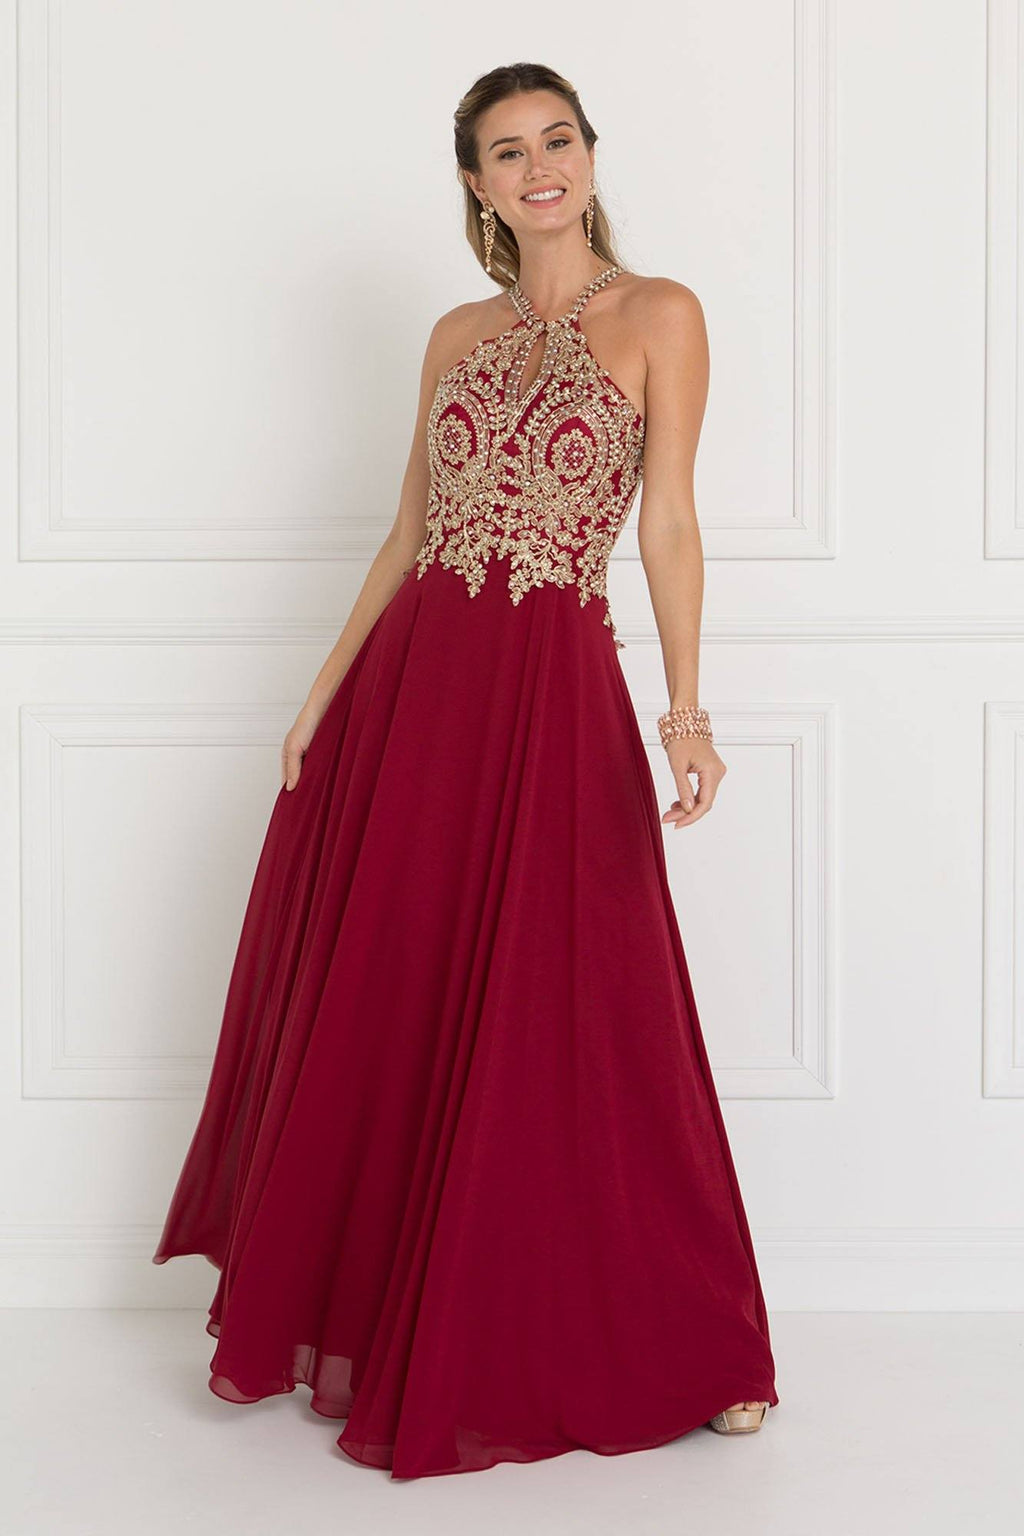 Burgundy long prom dress GLS 1526-Simply Fab Dress